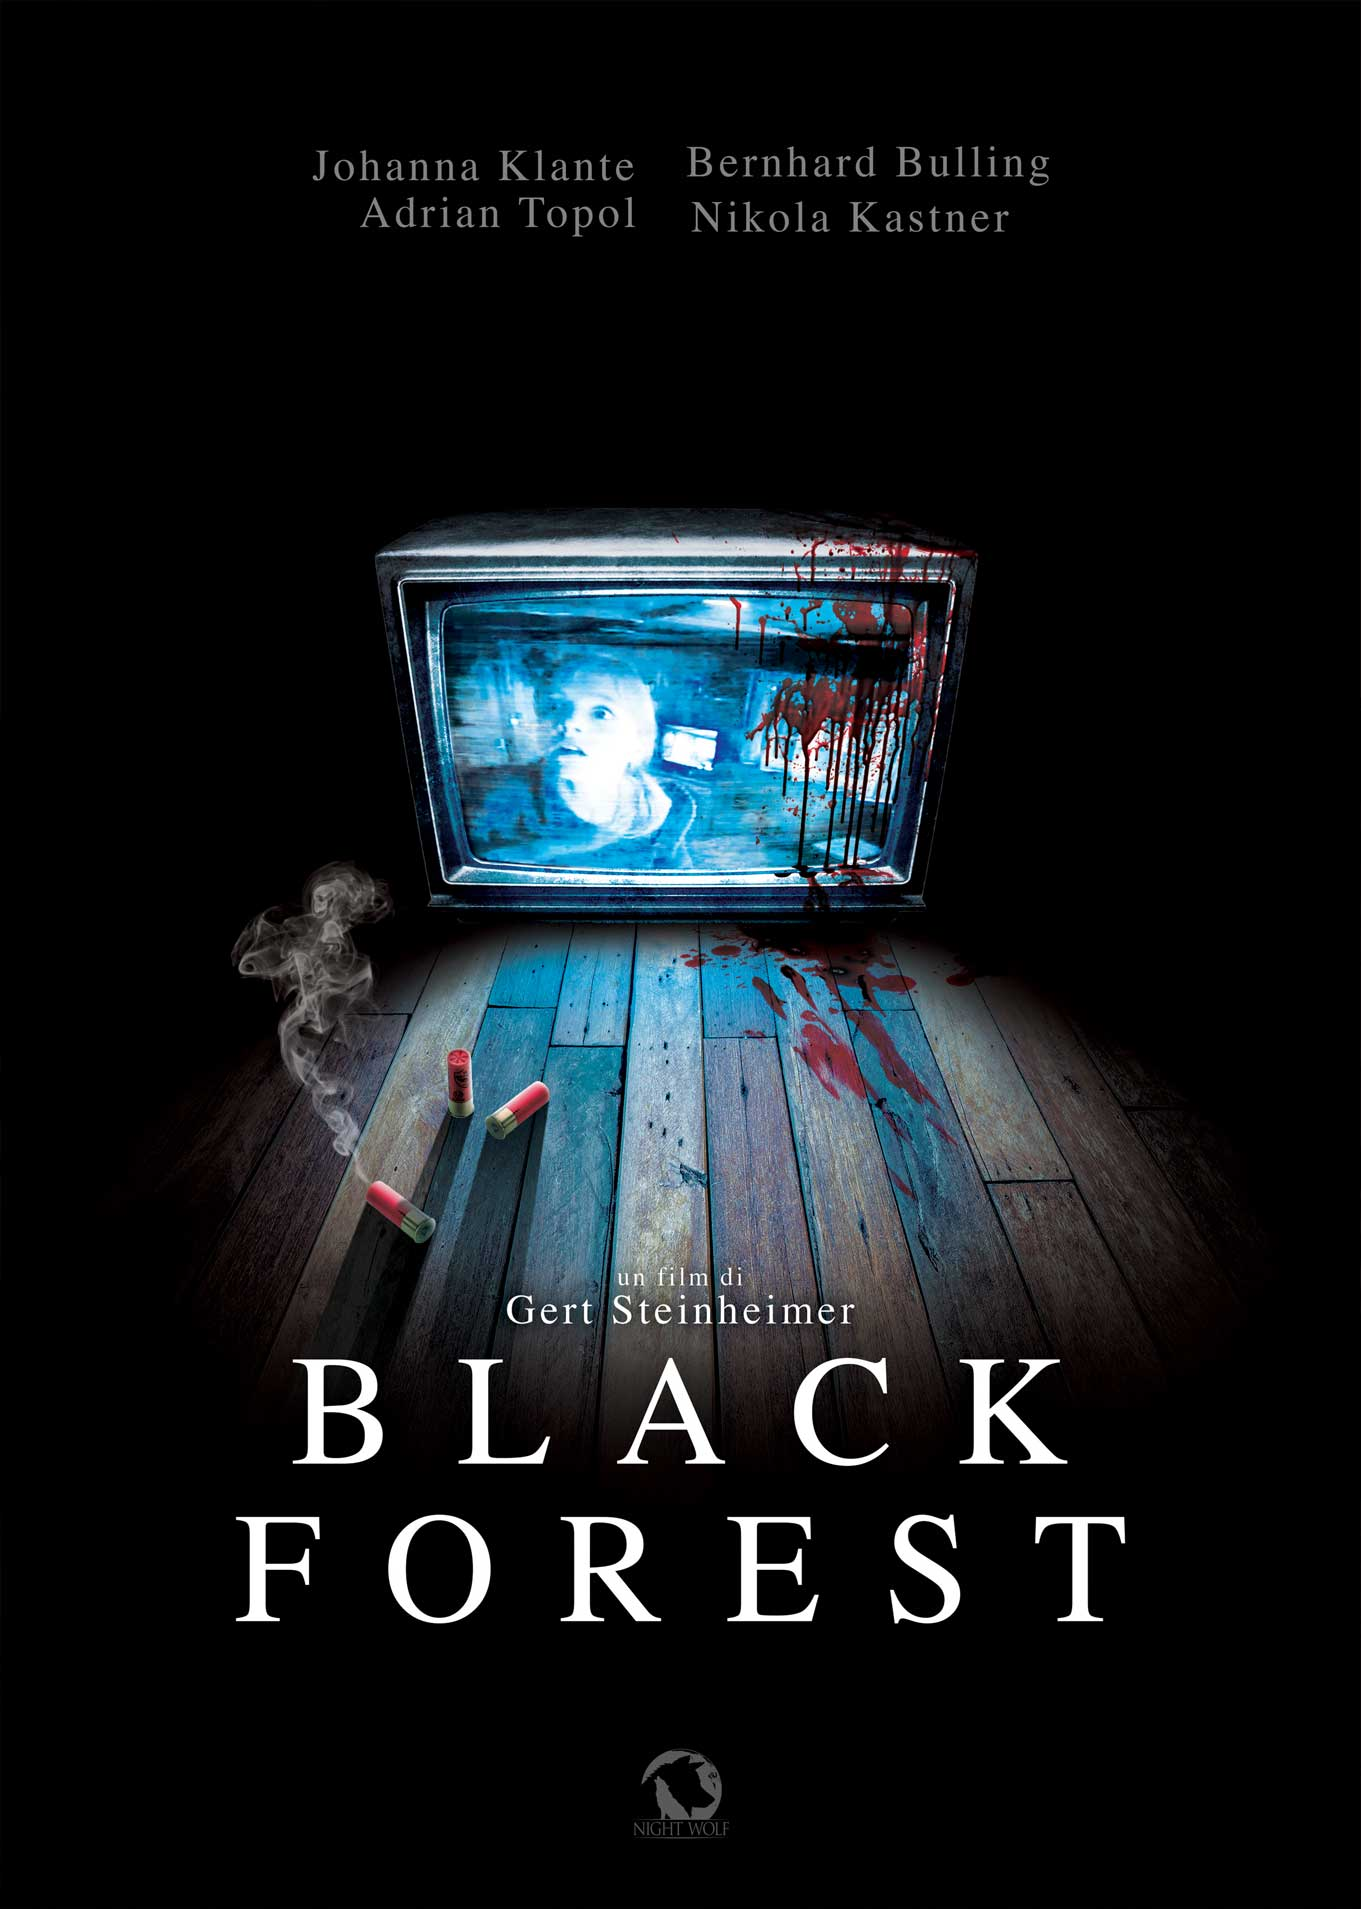 BLACK FOREST (DVD)